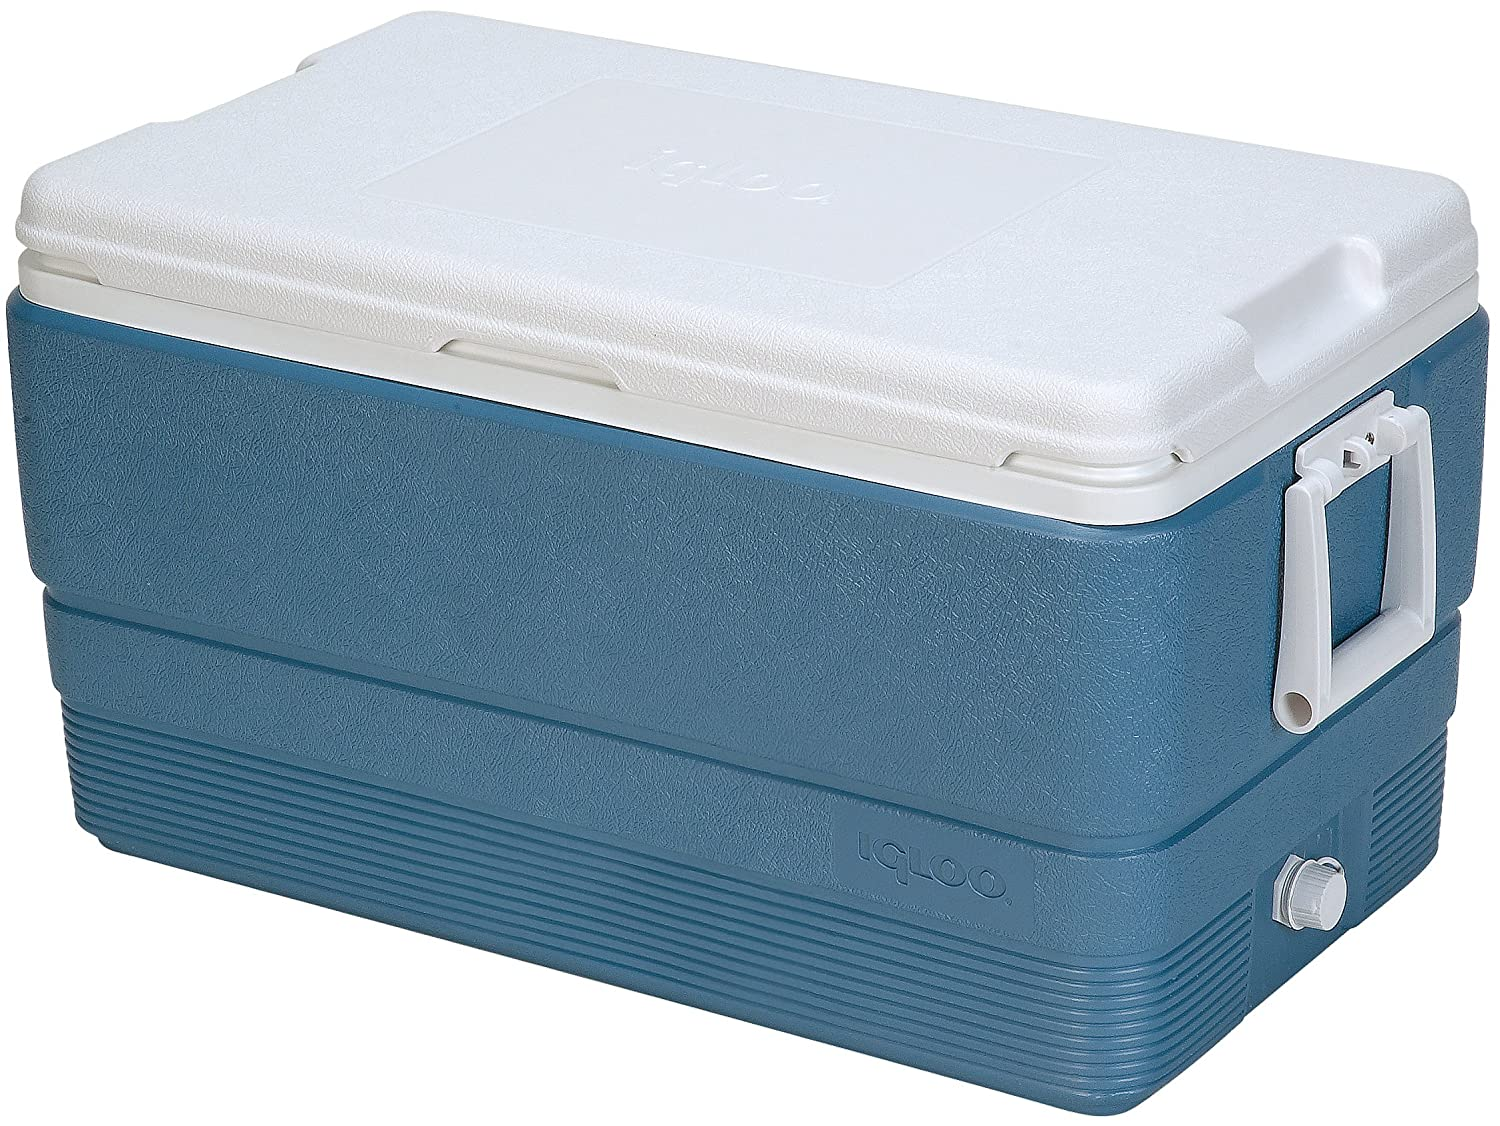 Igloo 70 Quart Maxcold Extended Performance Cooler (japan import)